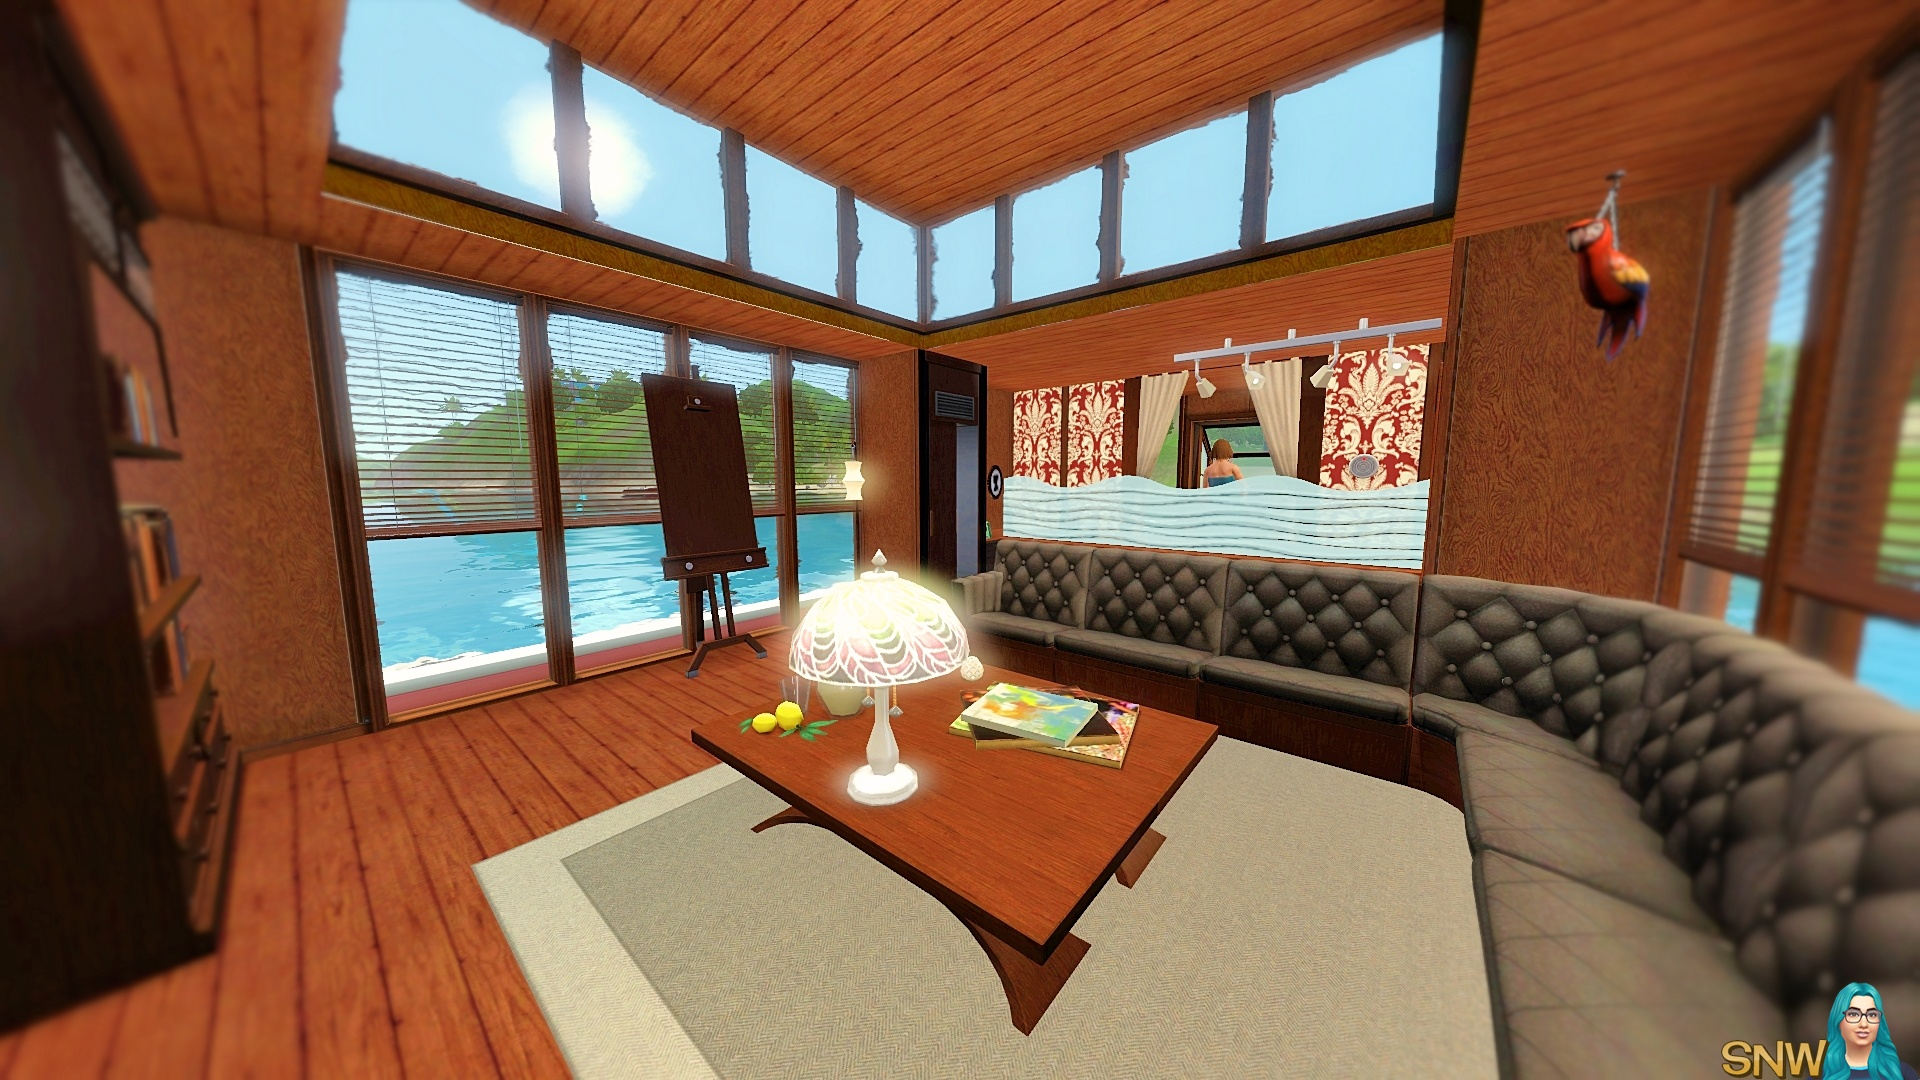 Navicula Houseboat Snw Simsnetwork Com